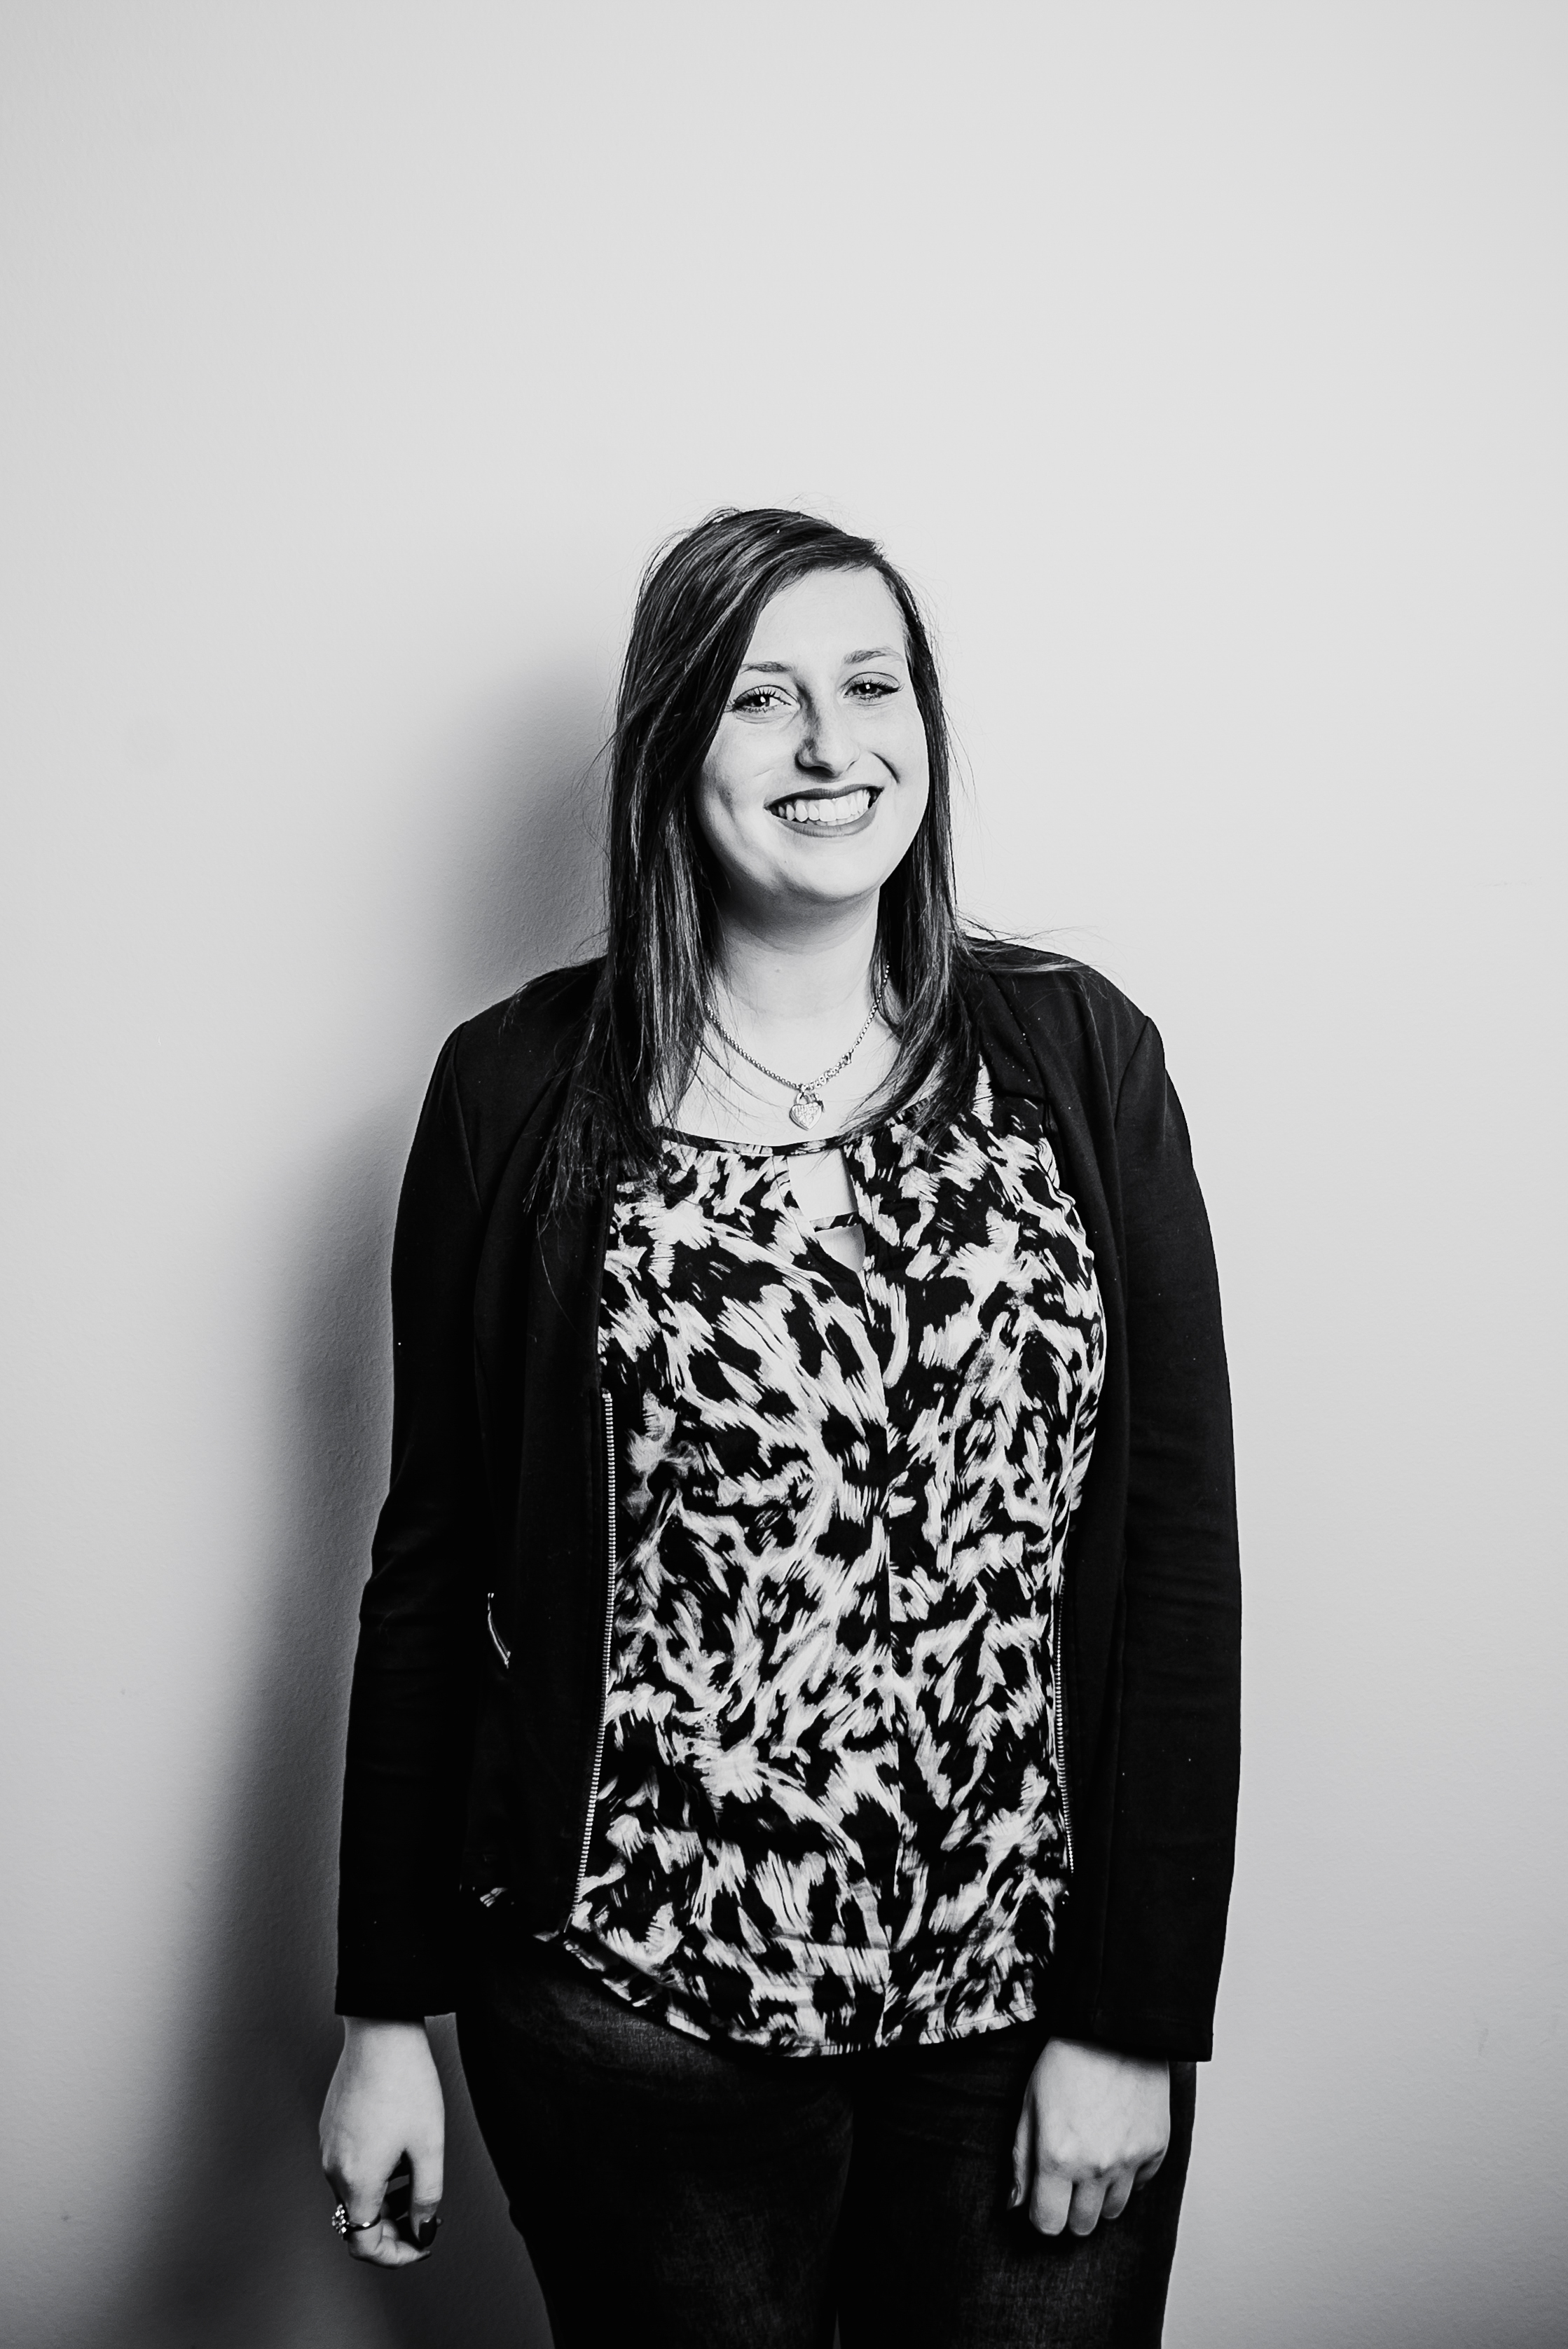 Shannon Van den Borre,   Glocally  .   Student International Business Management   Glocally is an unincorporated association that has global ambition to create and support local (sustainable) projects all over the world.